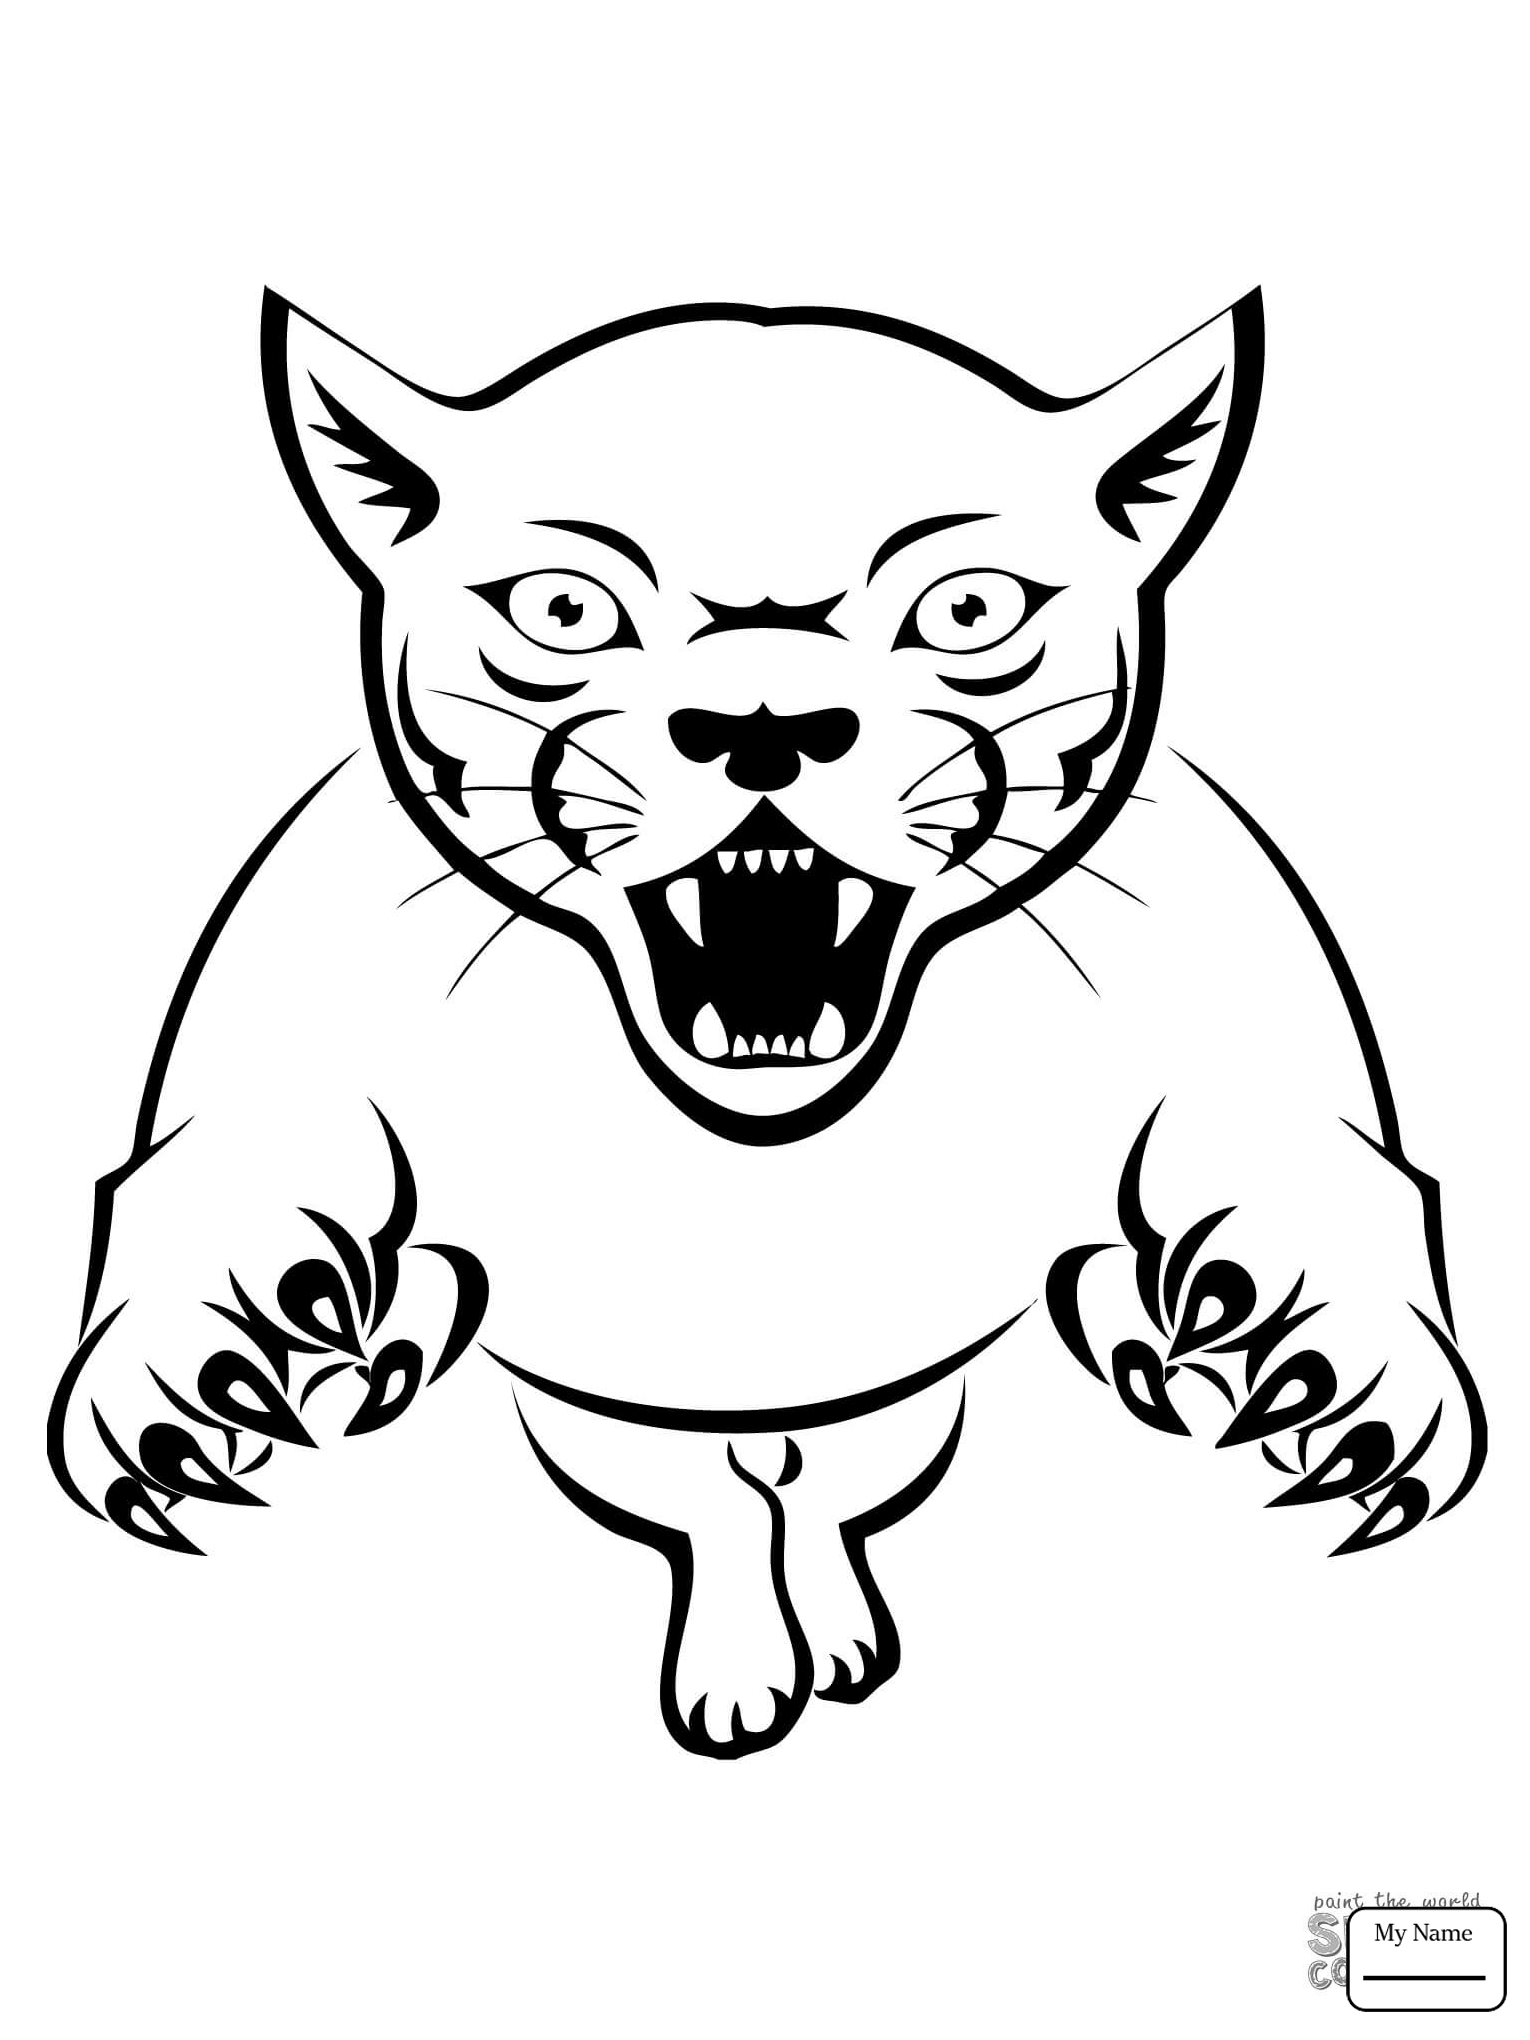 mountain lion coloring pages mountain lion coloring download mountain lion coloring lion mountain coloring pages